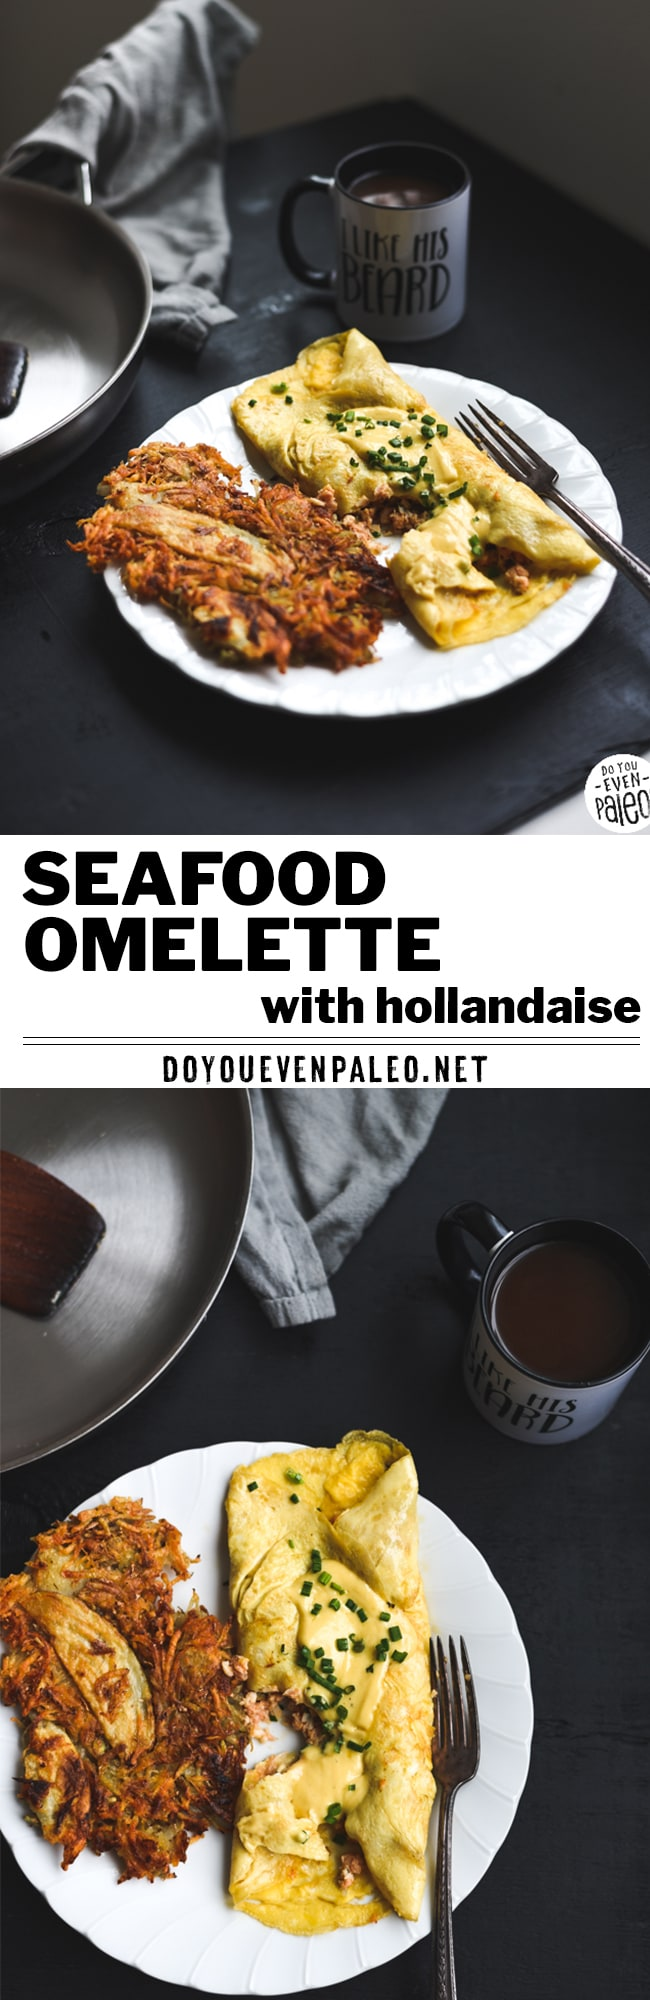 A hearty seafood omelette recipe sponsored by Southern Kitchen and topped with dairy free hollandaise sauce! It's gluten free and paleo. | DoYouEvenPaleo.net